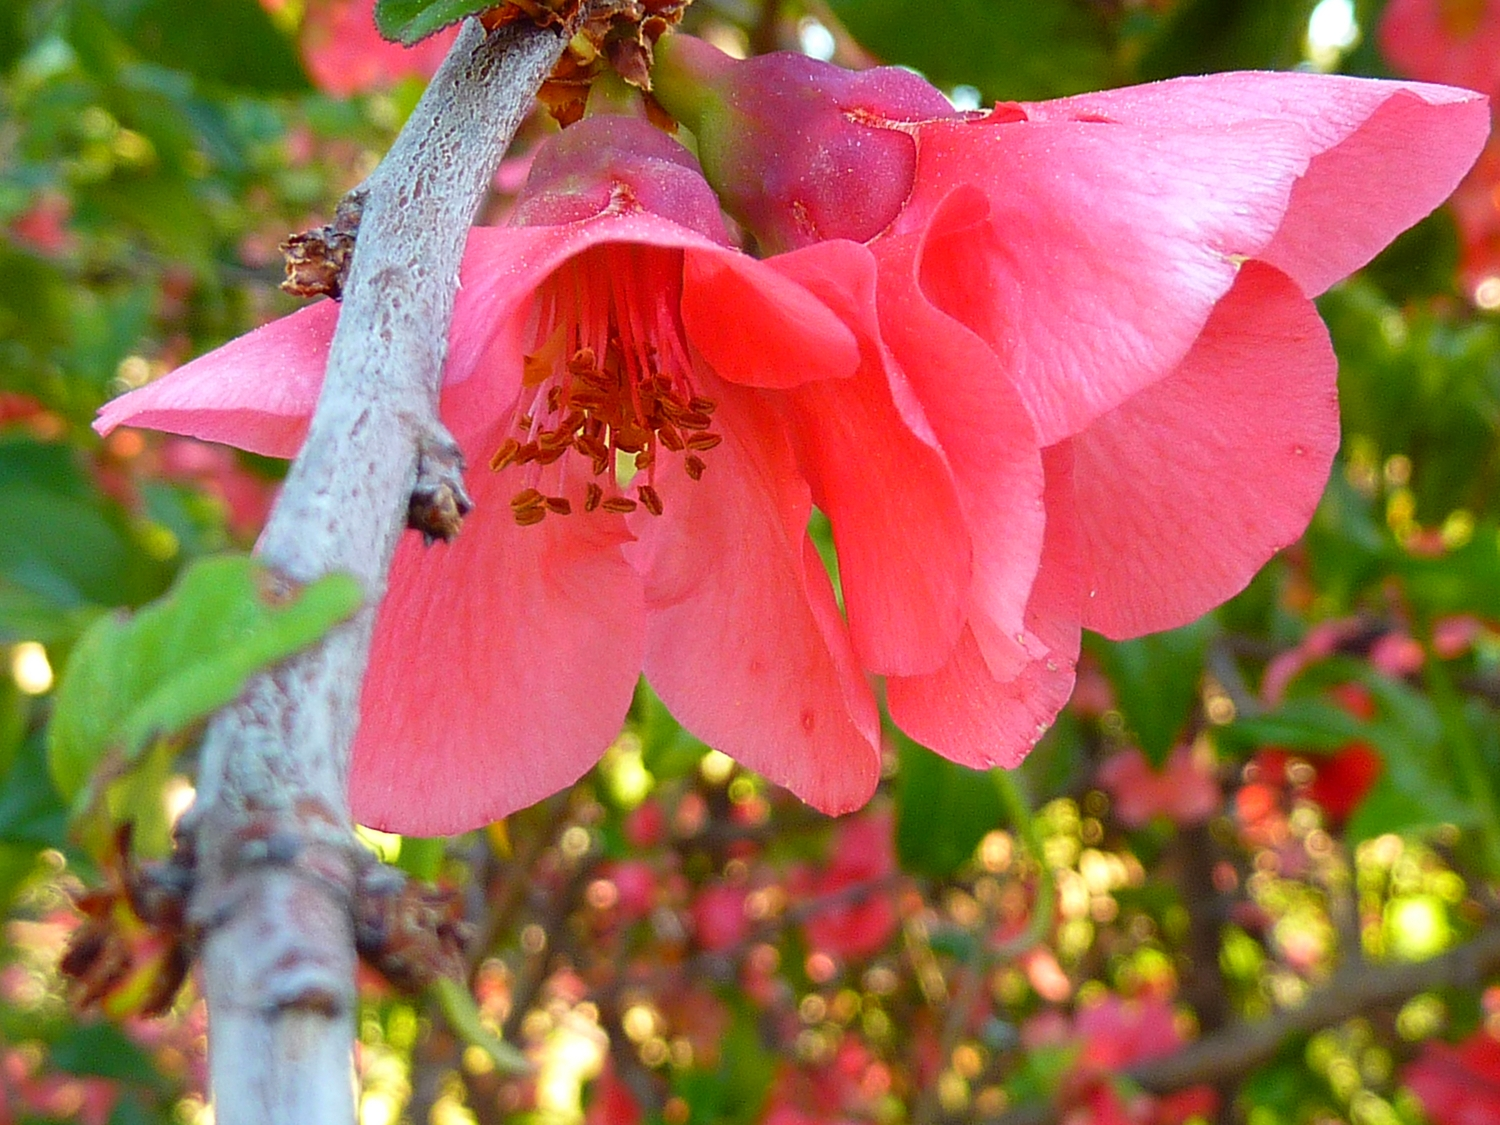 QUINCE BLOSSOM IN THE SPRING